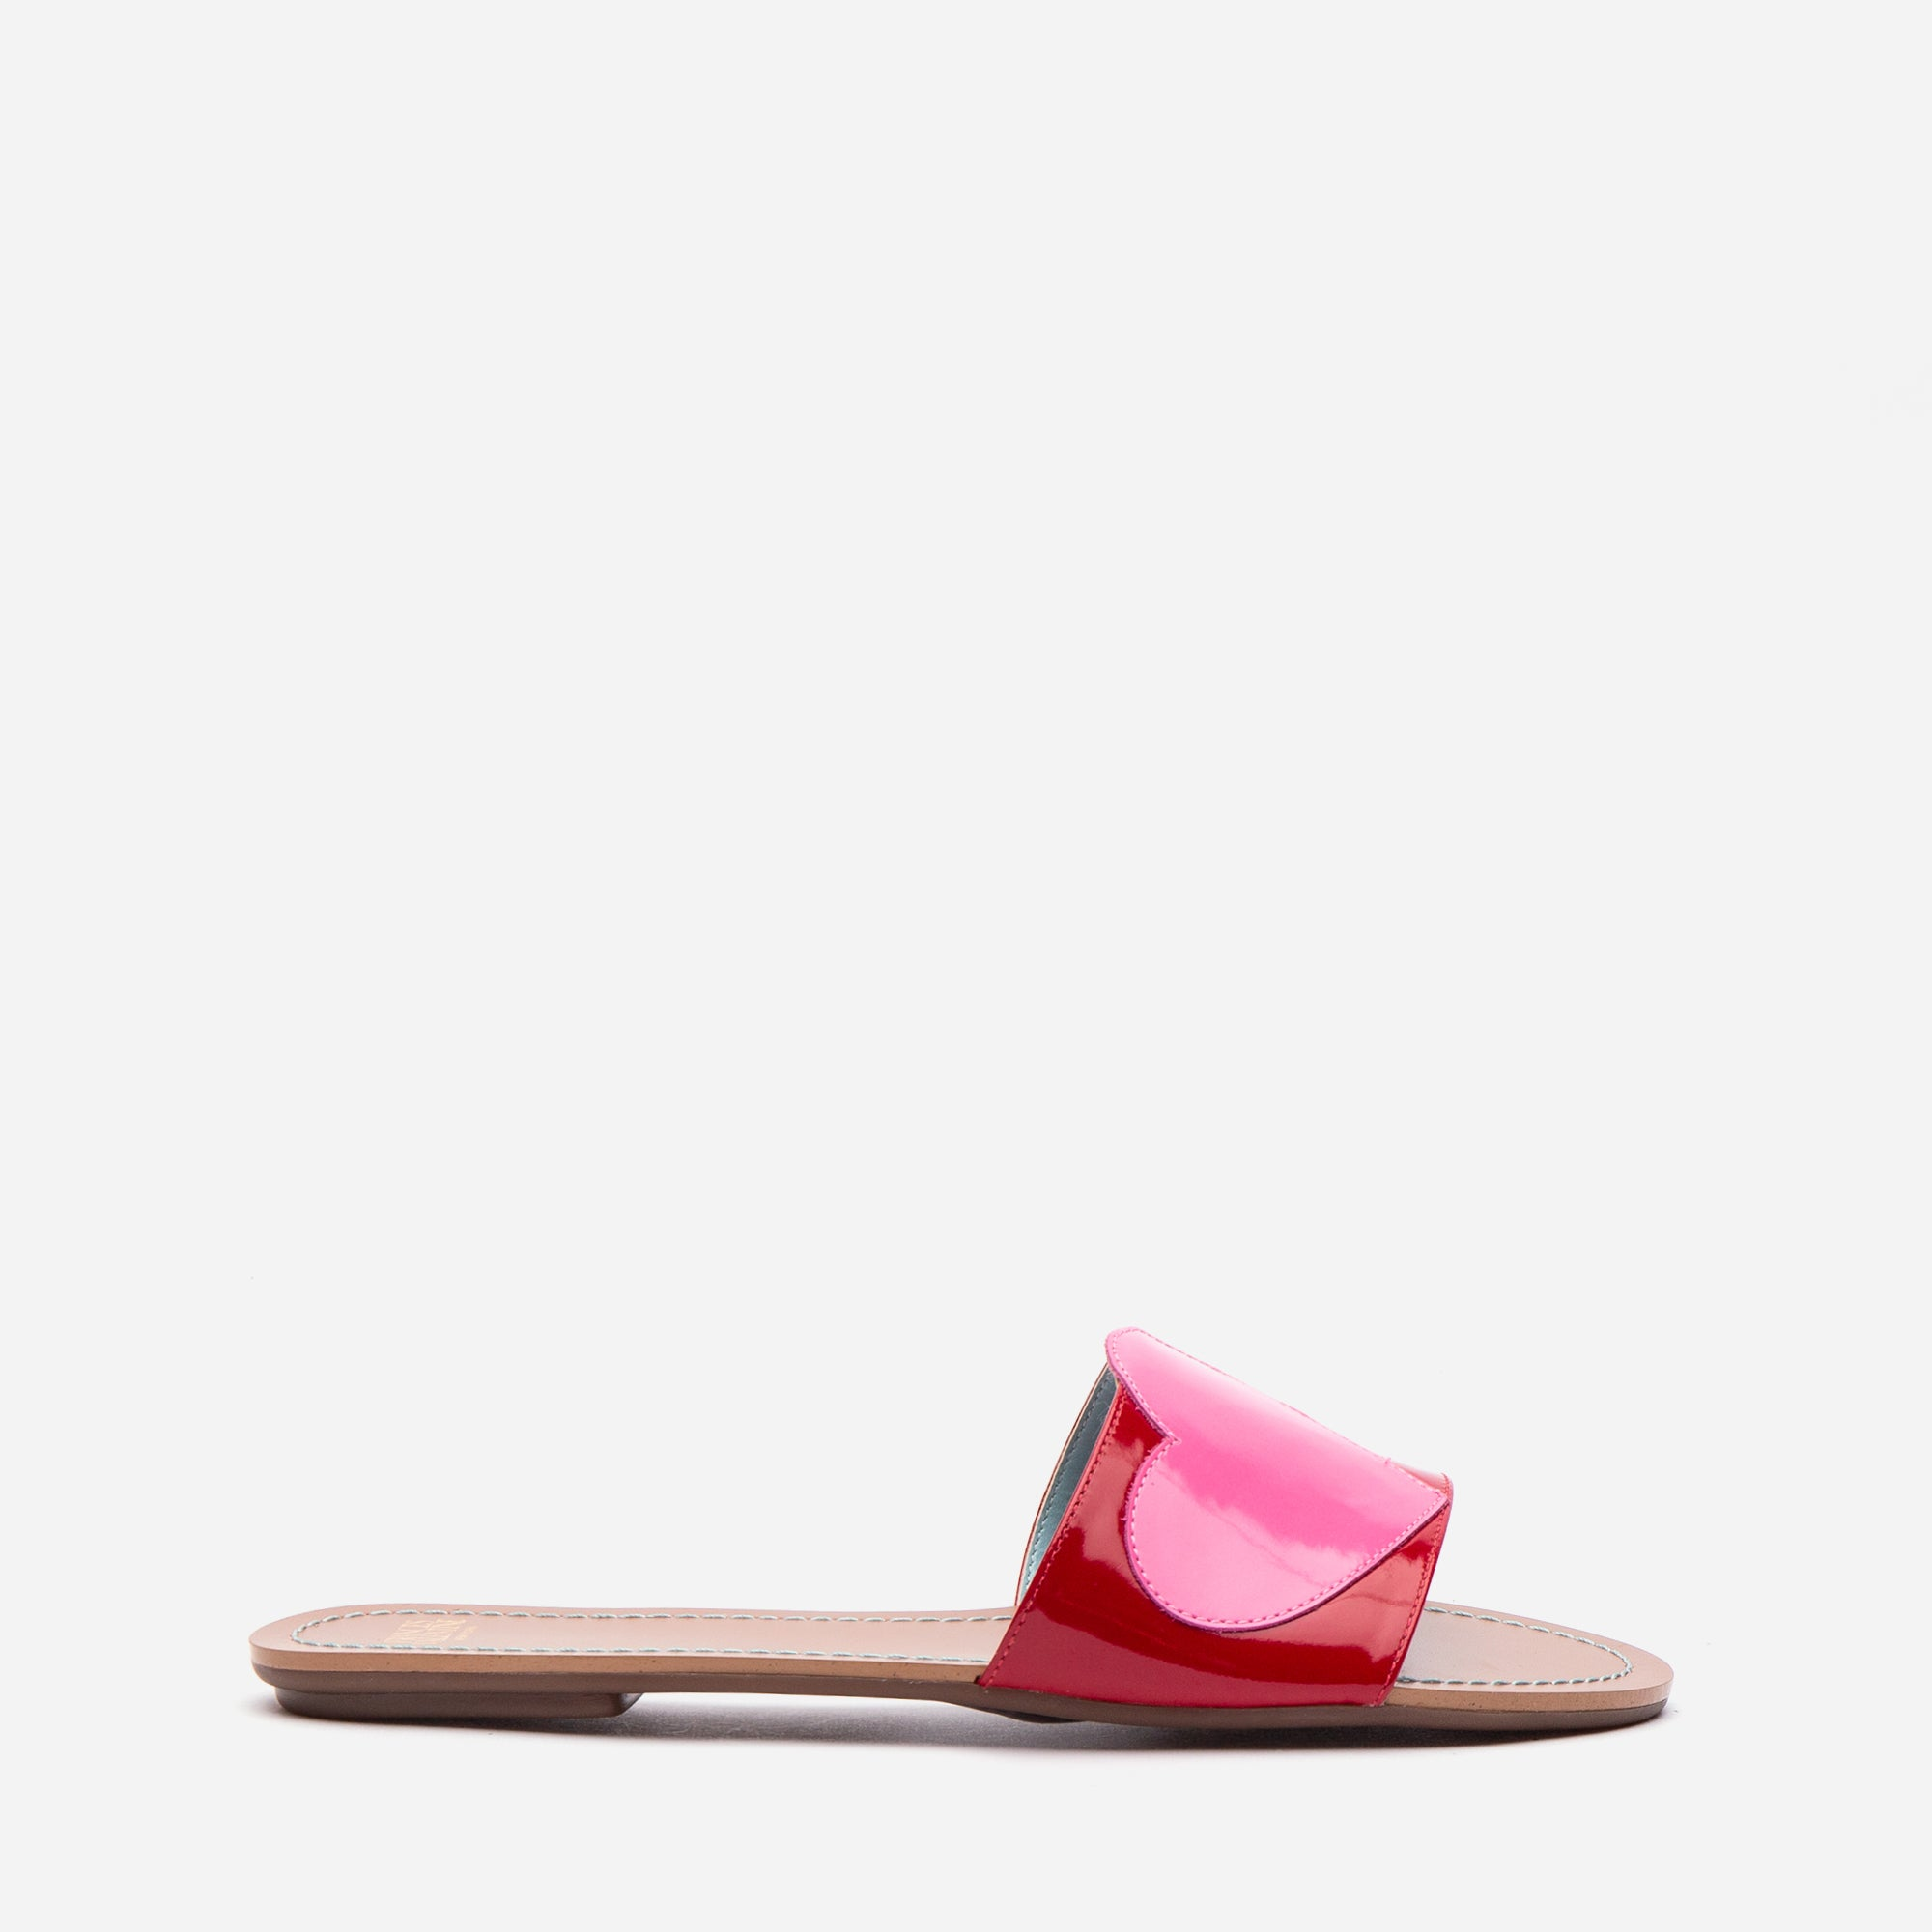 Heart Sandals Red Patent